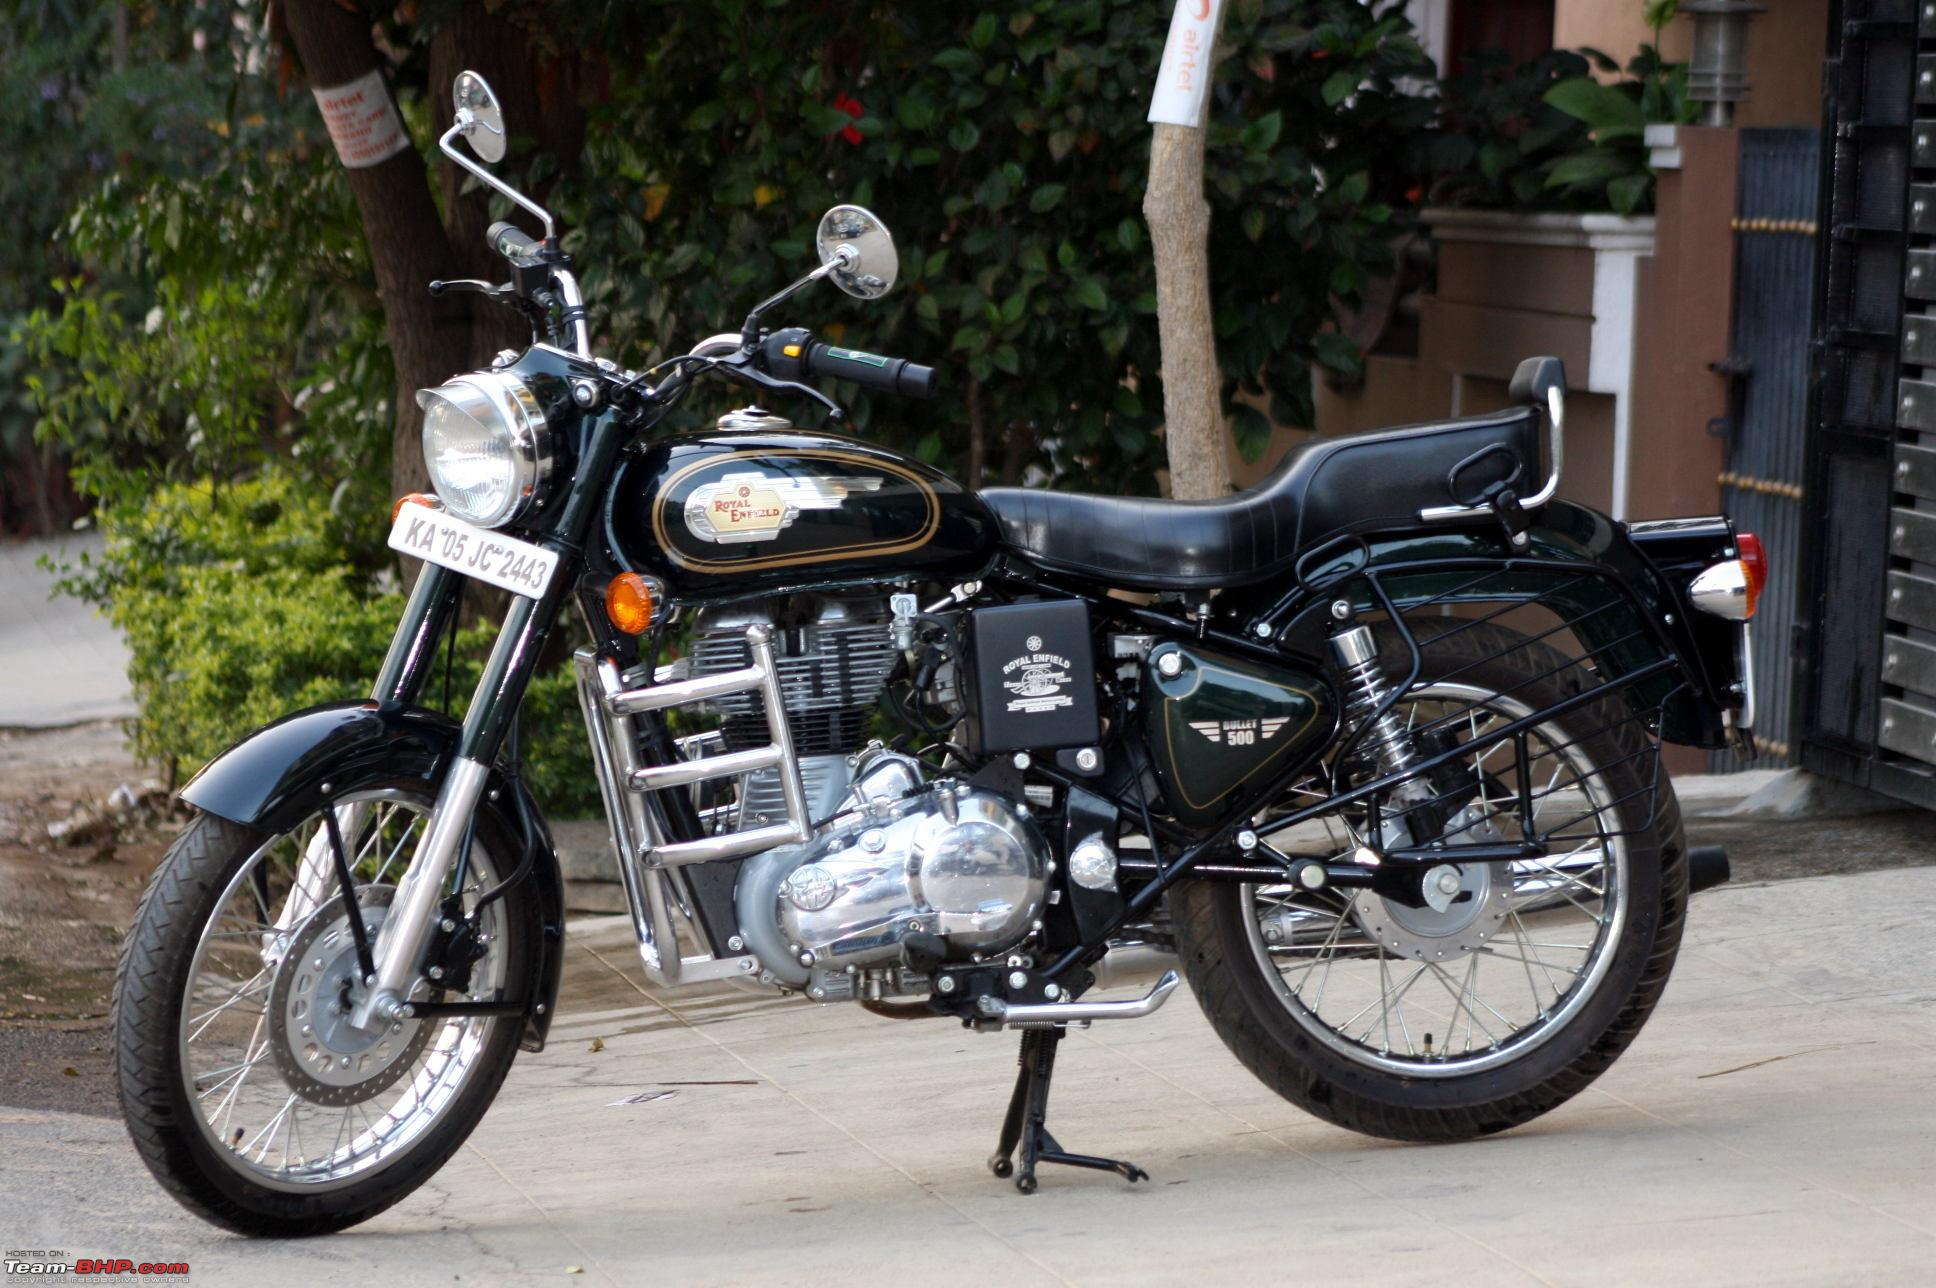 The story of another green bullet in my life my enfield bullet 500 the story of another green bullet in my life my enfield bullet 500 bull1 publicscrutiny Gallery